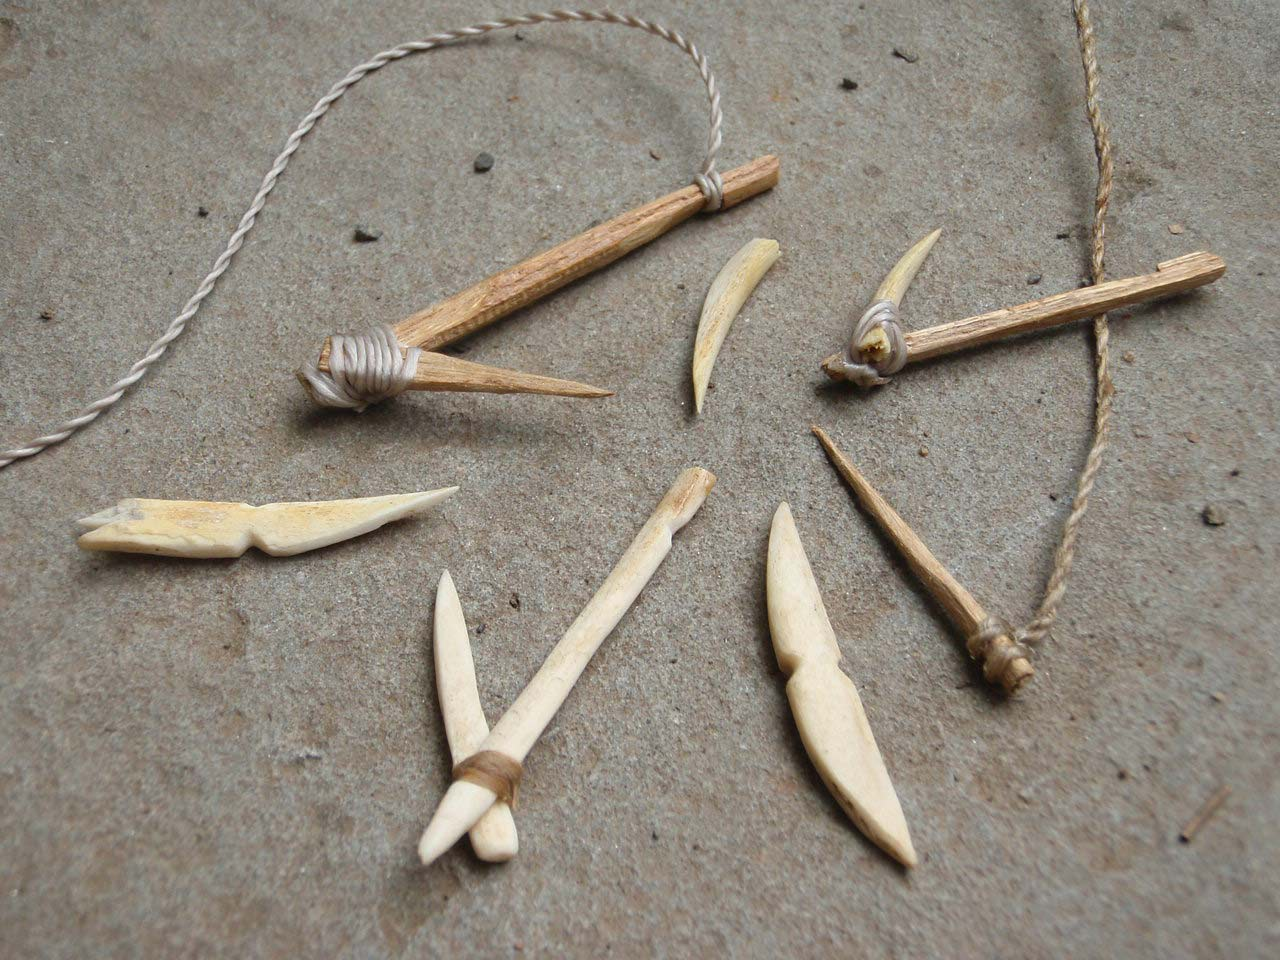 Primitive fish hooks made from wood and rocks.